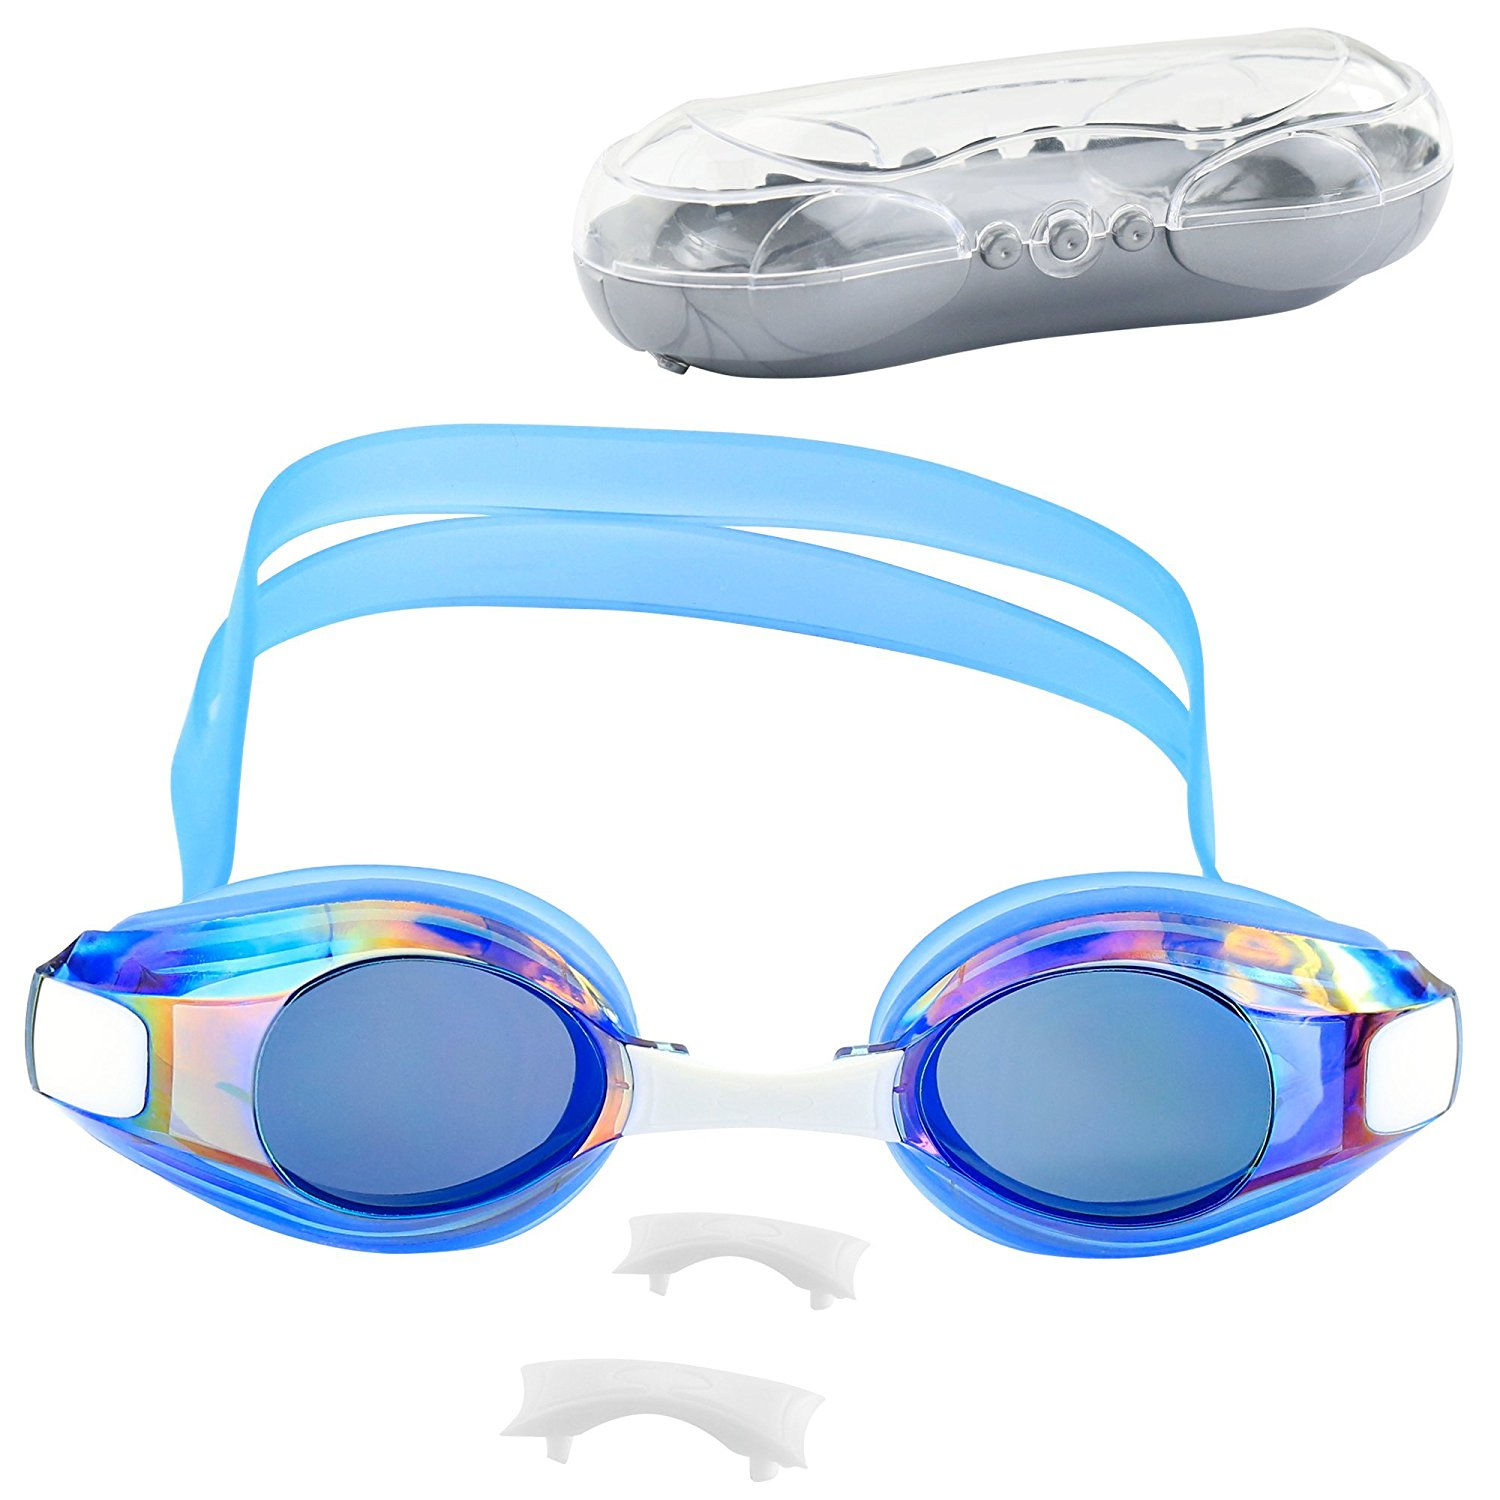 IPOW Professional Swim Goggle Mirrored Coated Anti-fog UV Protection No Leaking Waterproof Swimming Glasses Wide View... by IPOW